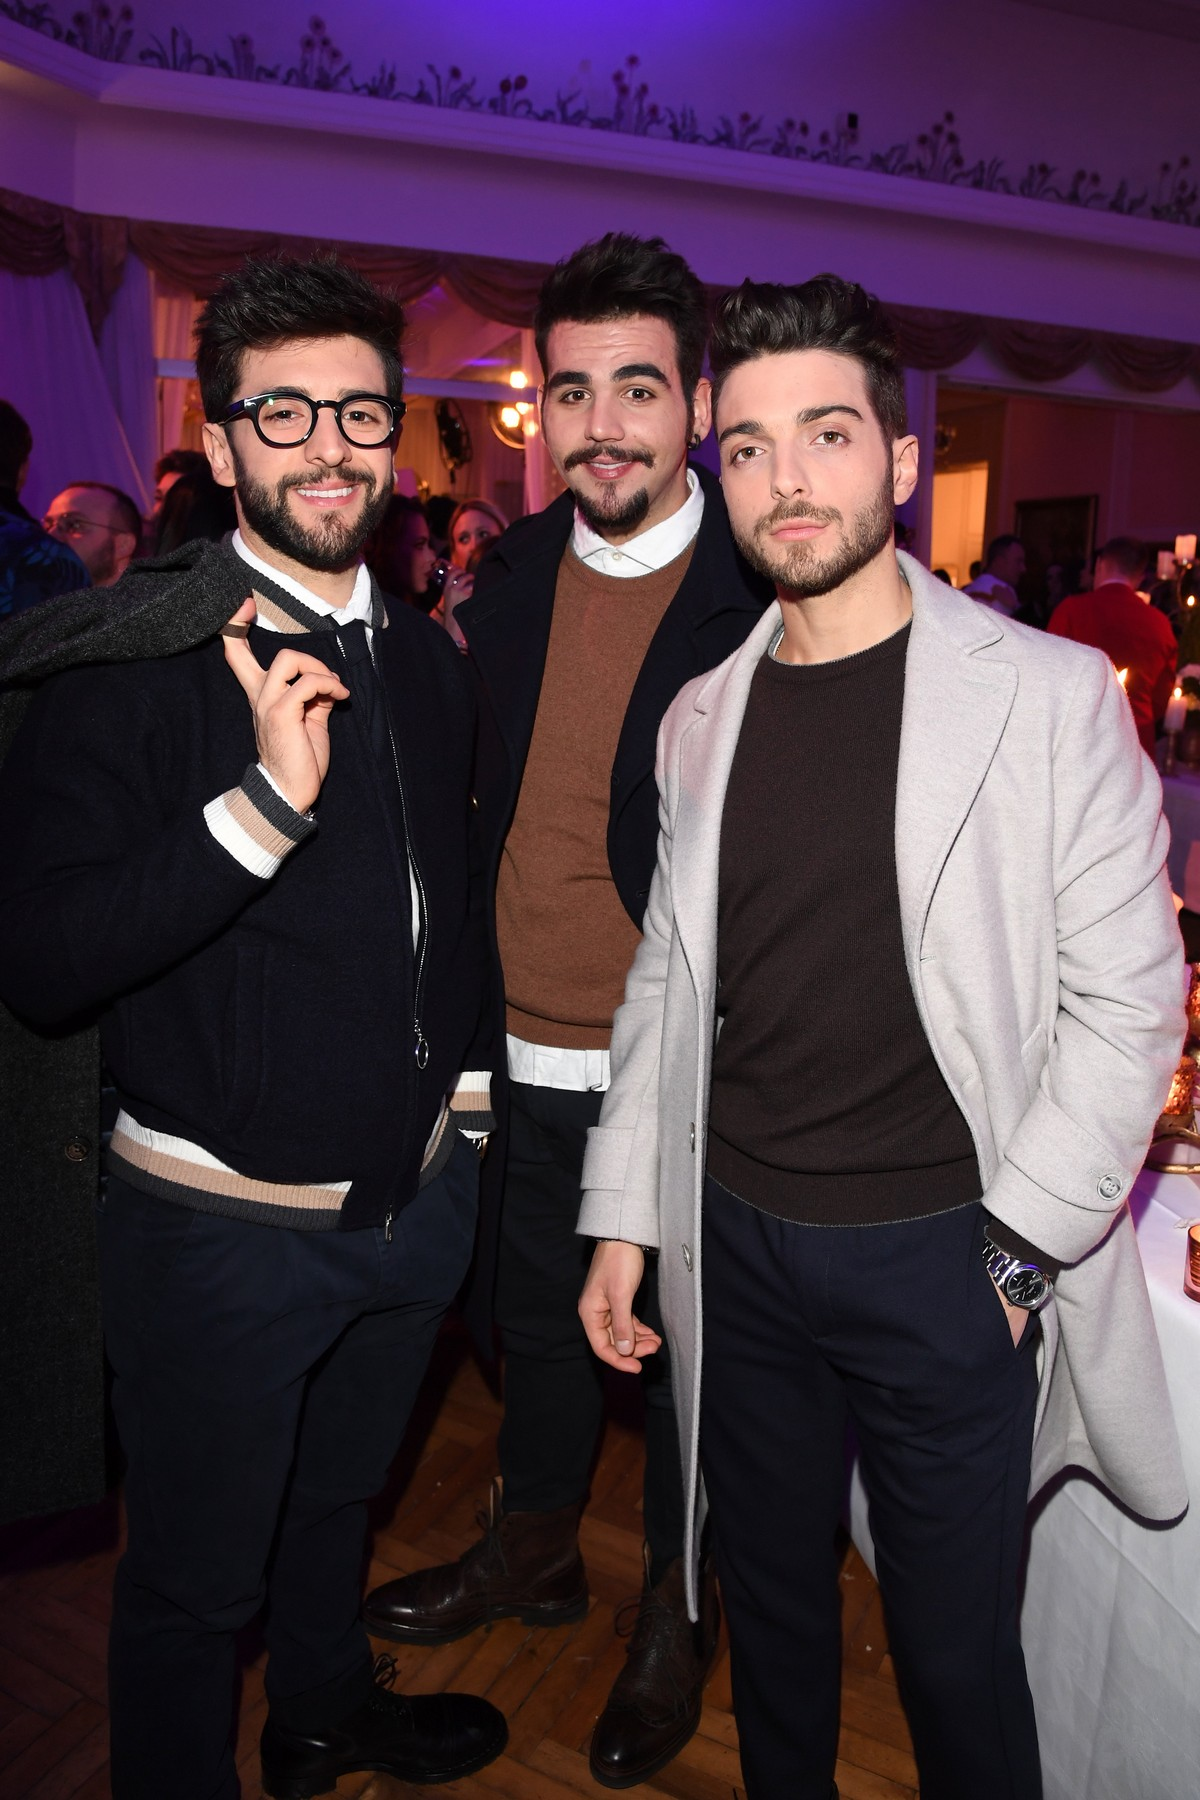 Festival Sanremo 2019 party